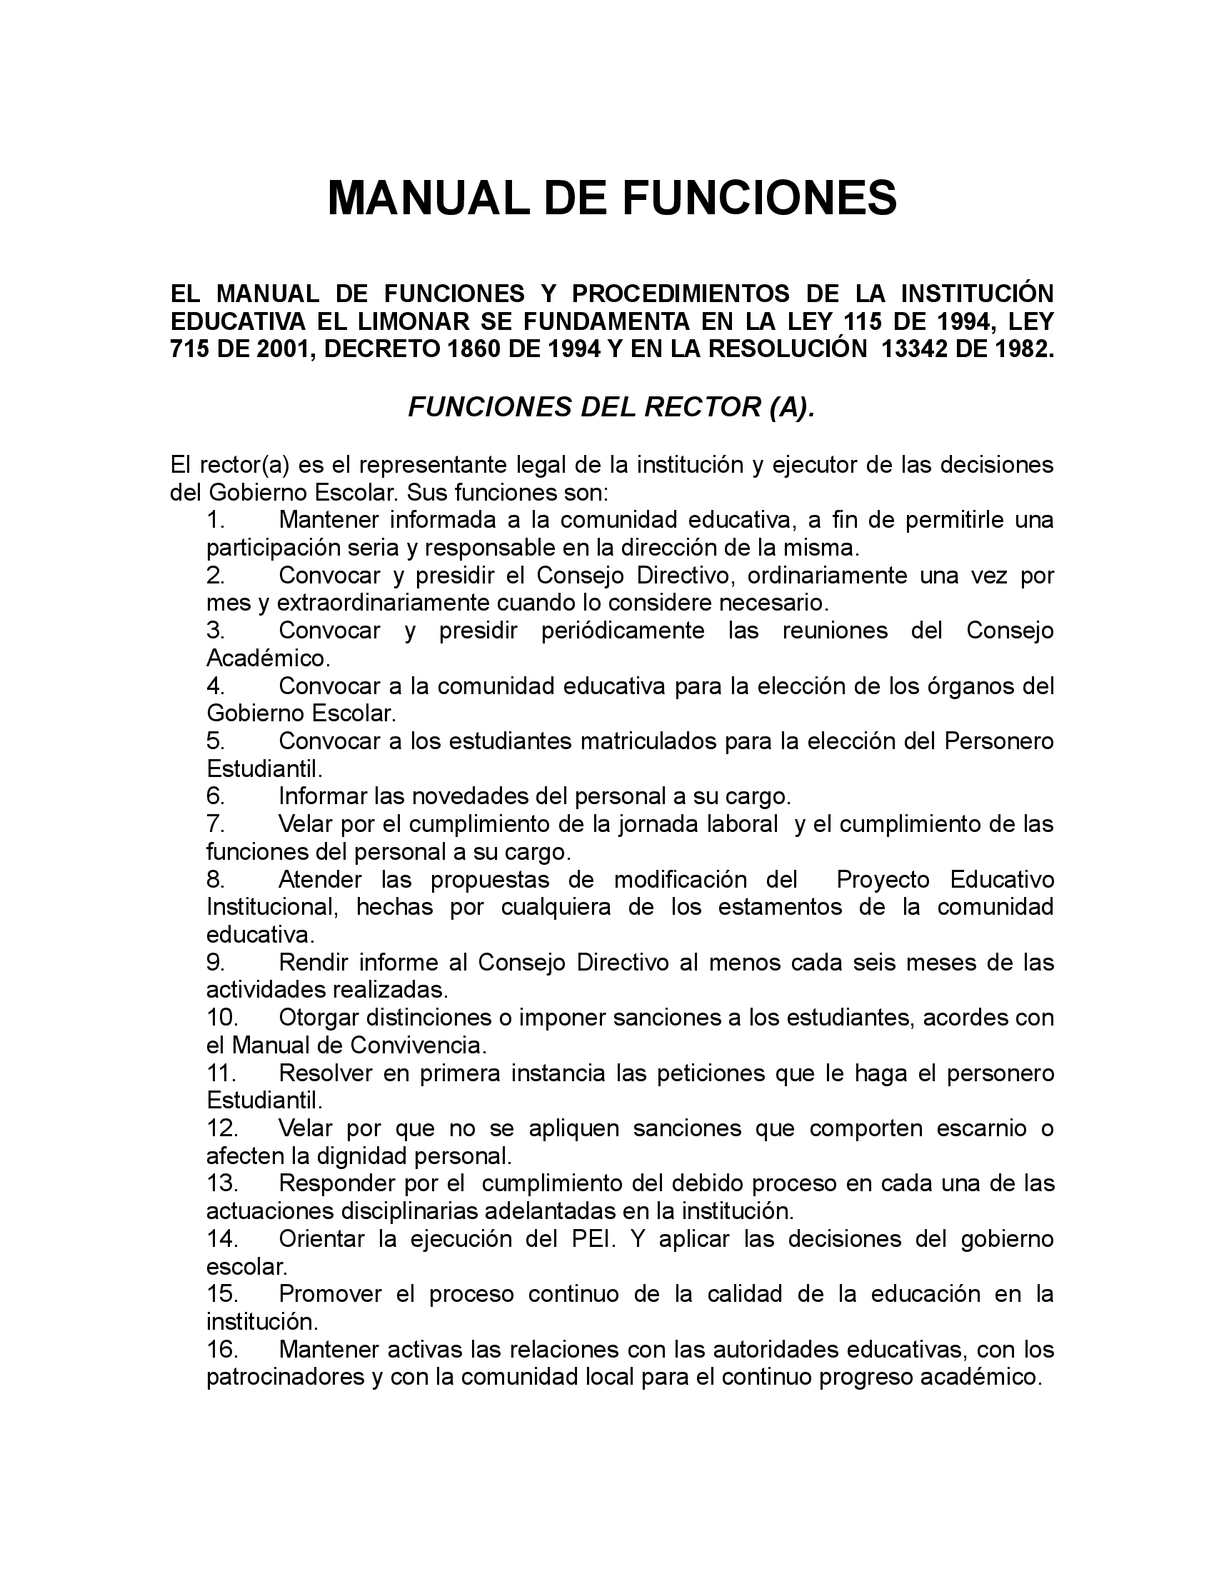 Calam o manual de funciones for Manual de funciones y procedimientos de un restaurante